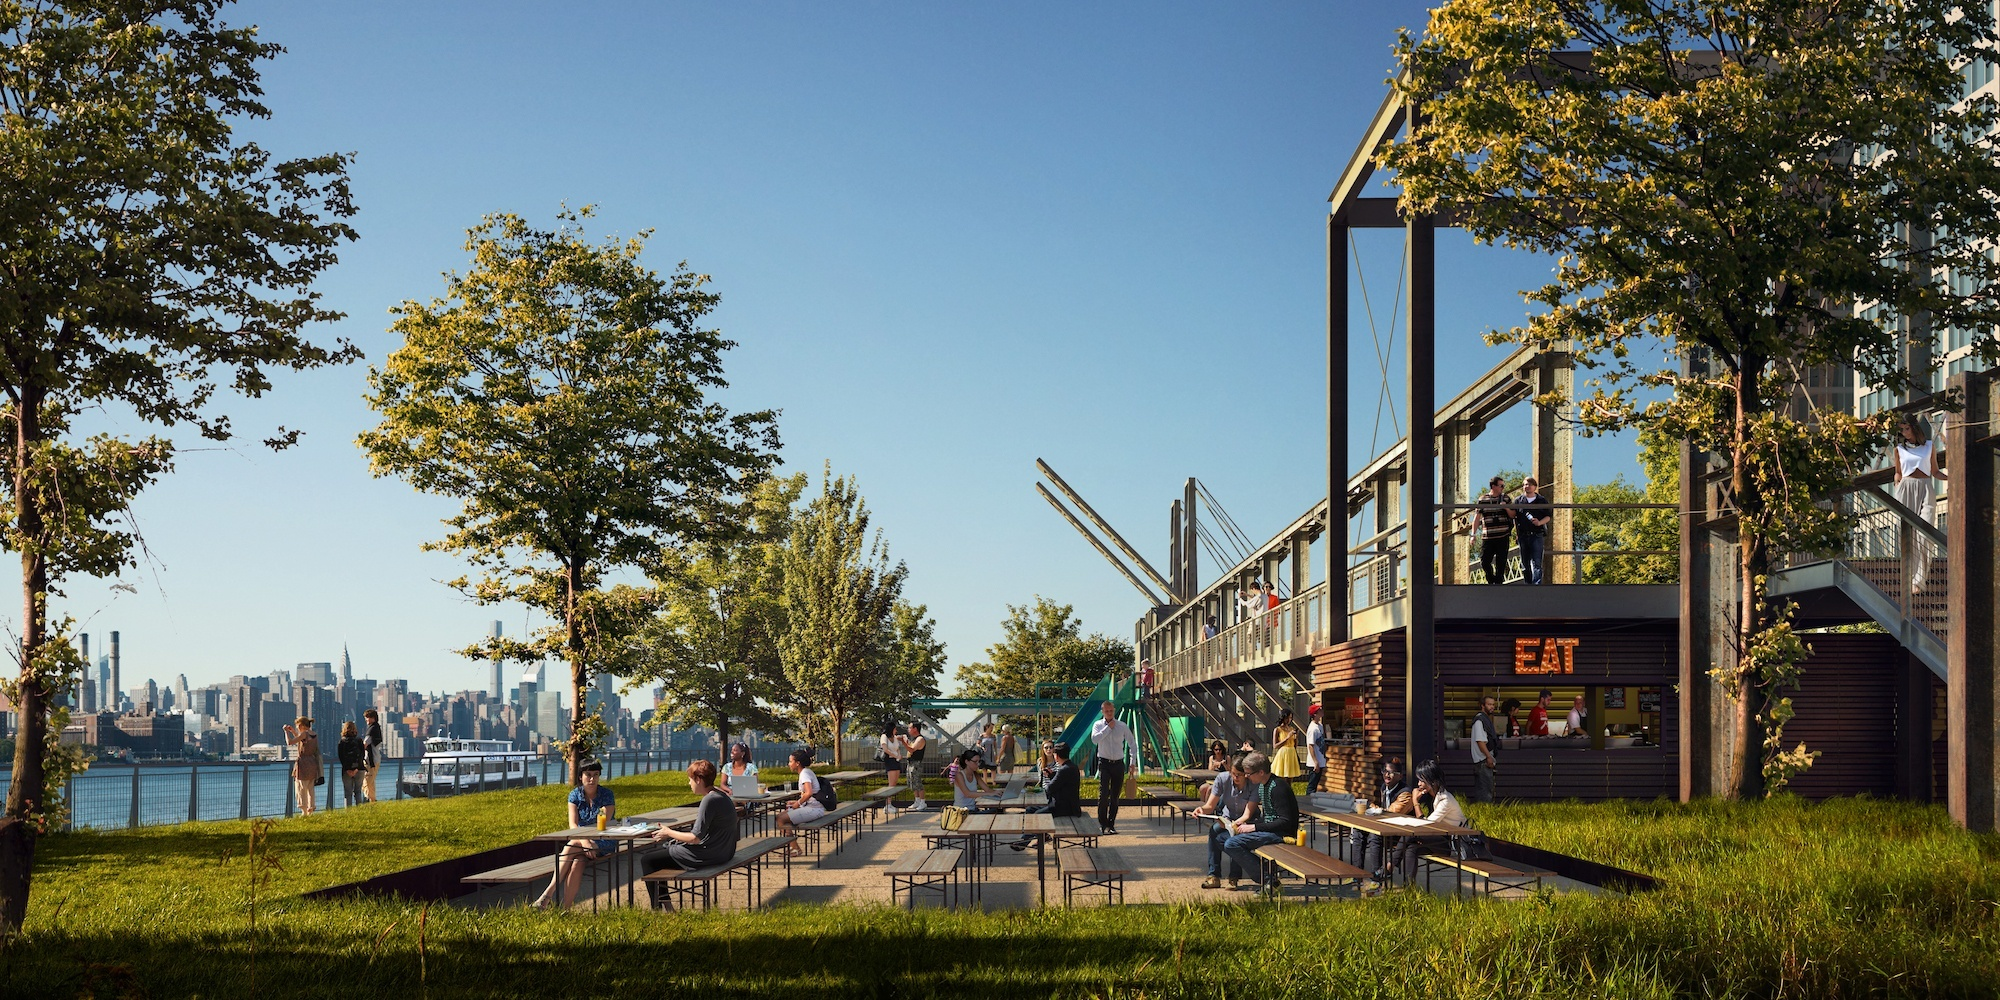 First look at the new waterfront park coming to Williamsburg